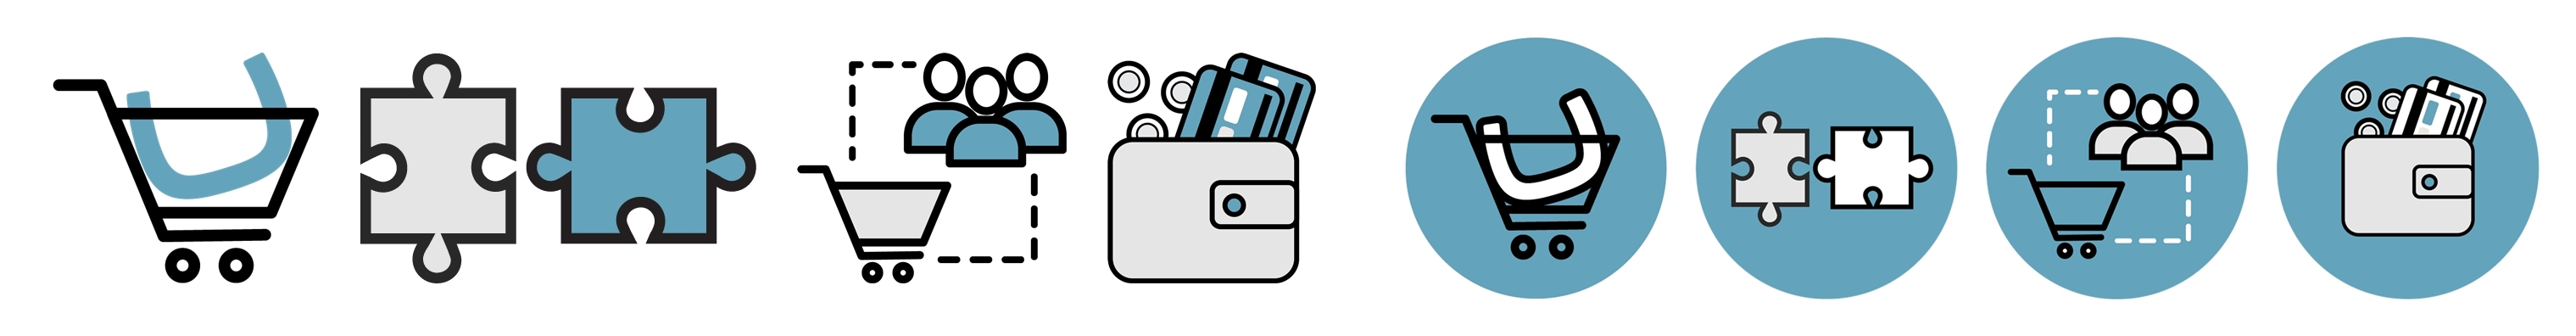 Evision Ecommerce Icons